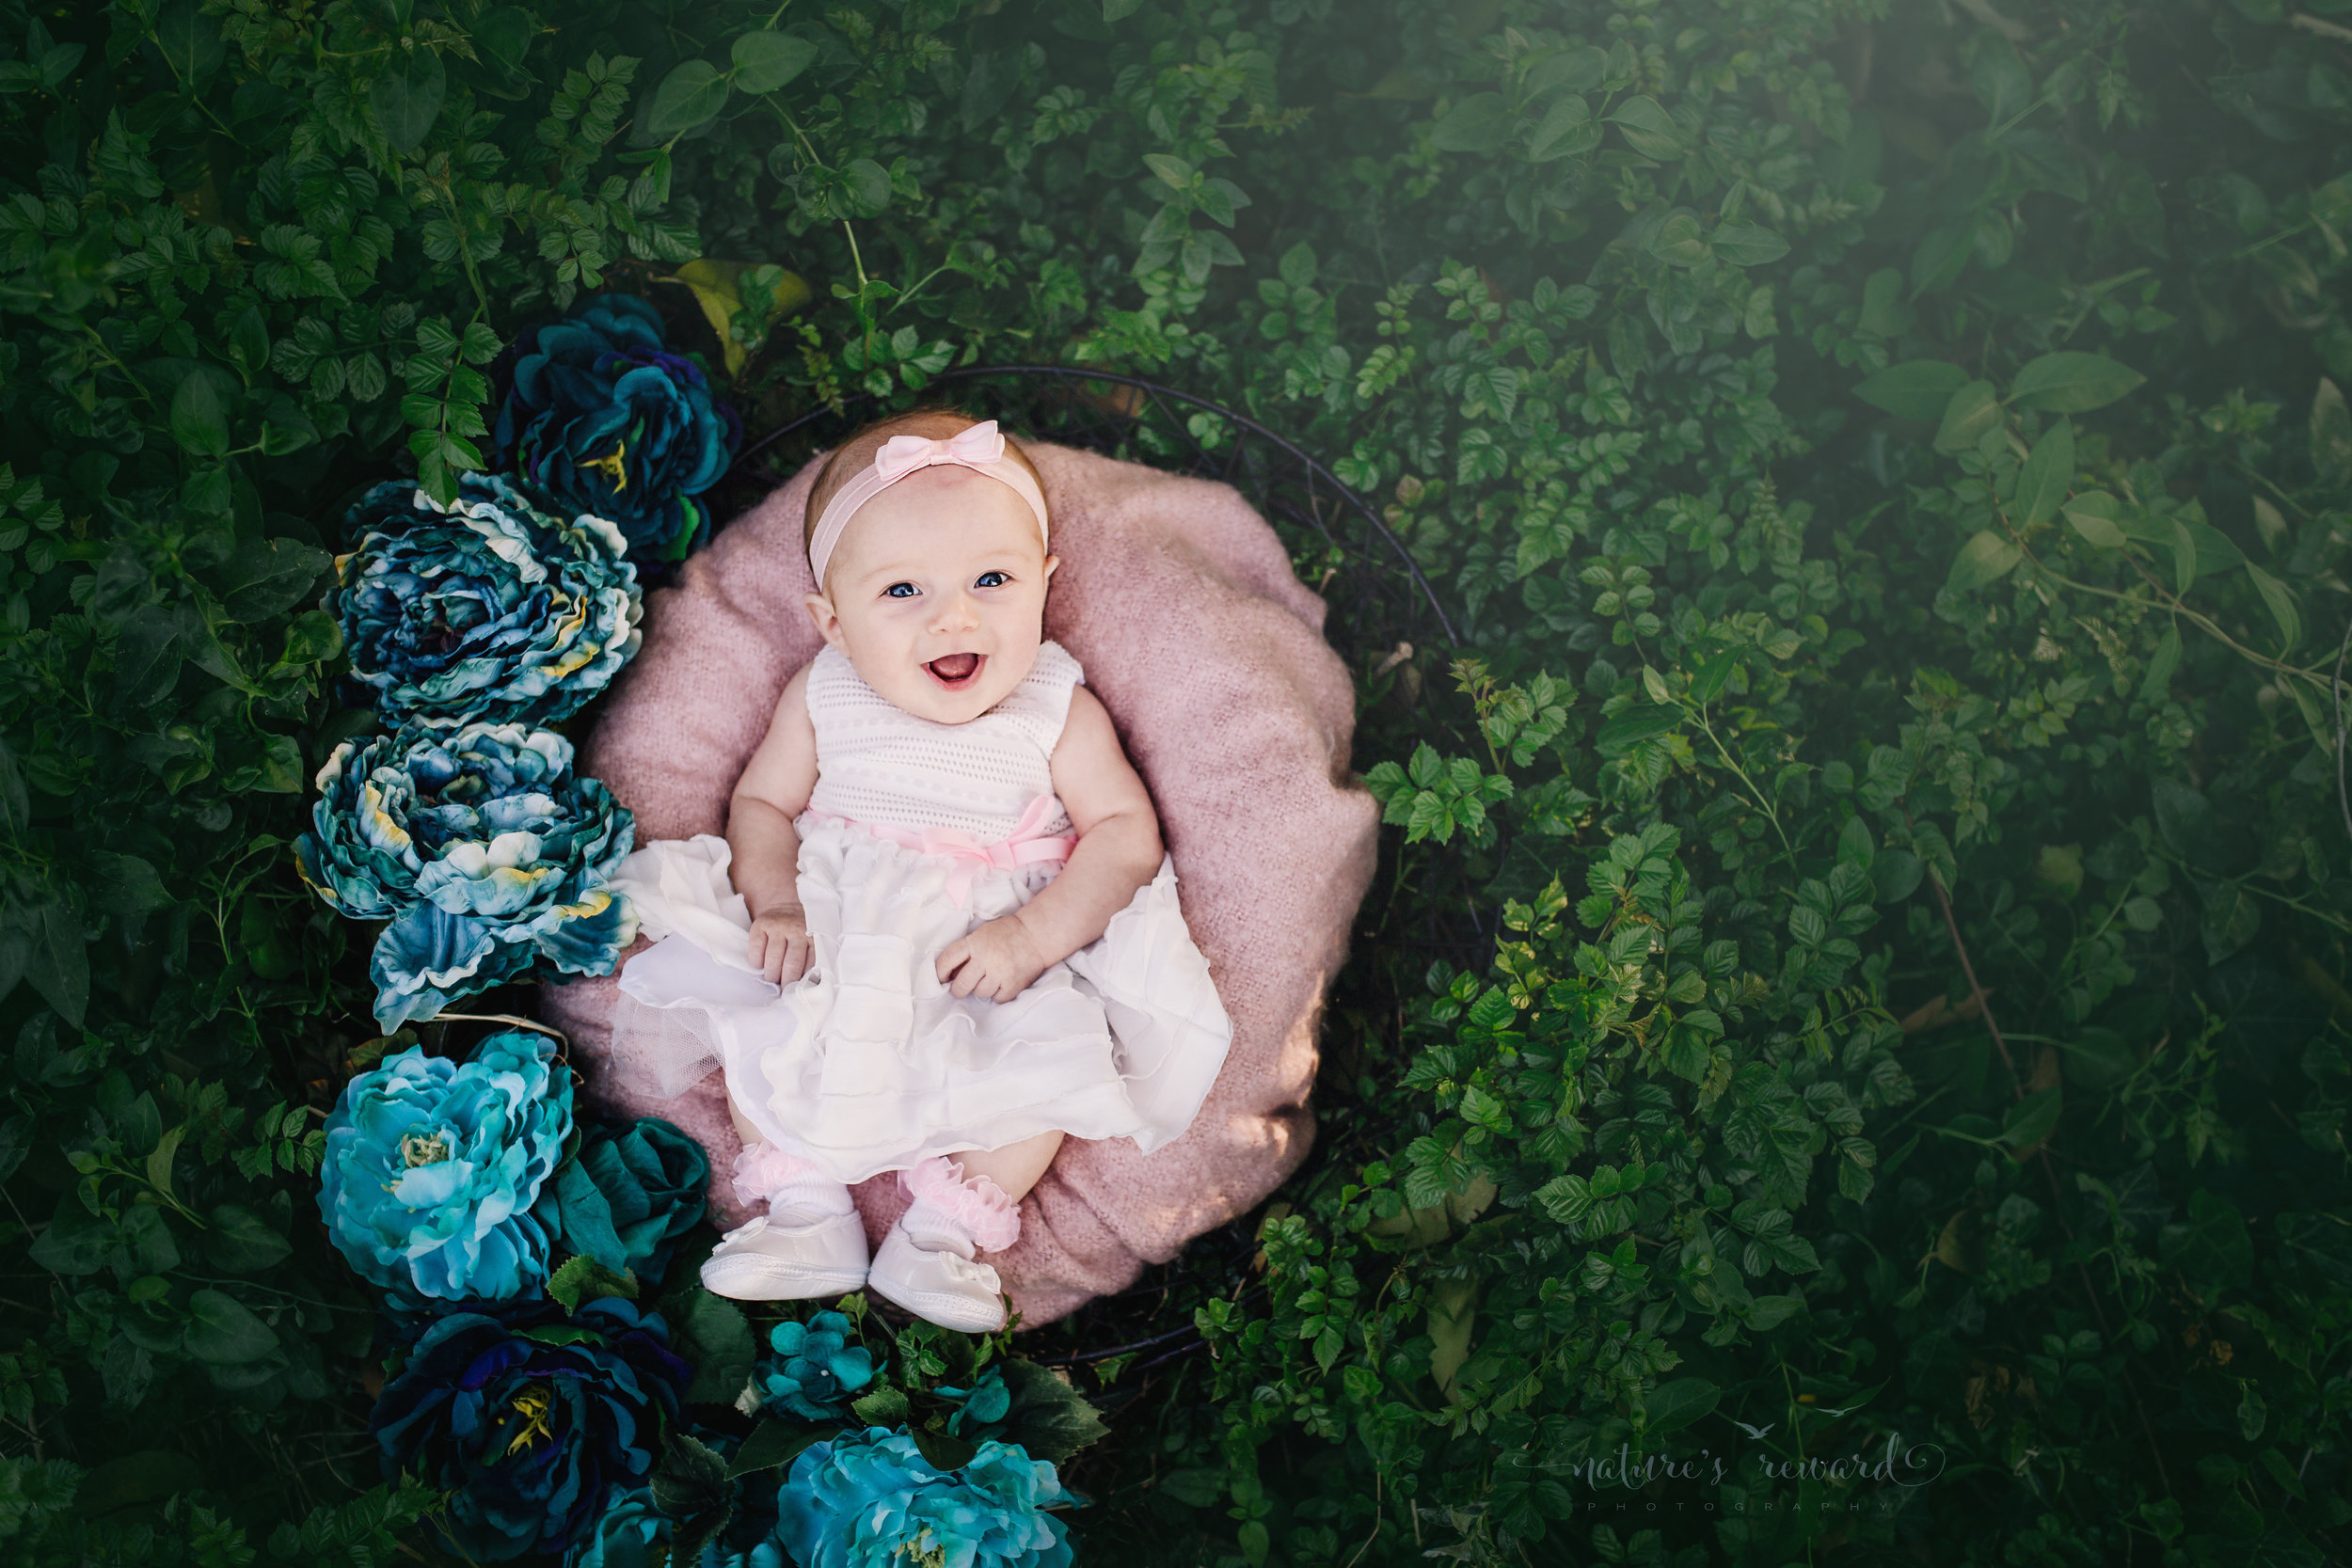 Three (3) month old smiling baby girl in a white dress and pink hair band smiles with joy in a basket with a pink blanket with blue and teal flowers accenting the ivy in this portrait by Nature's Reward Photography.